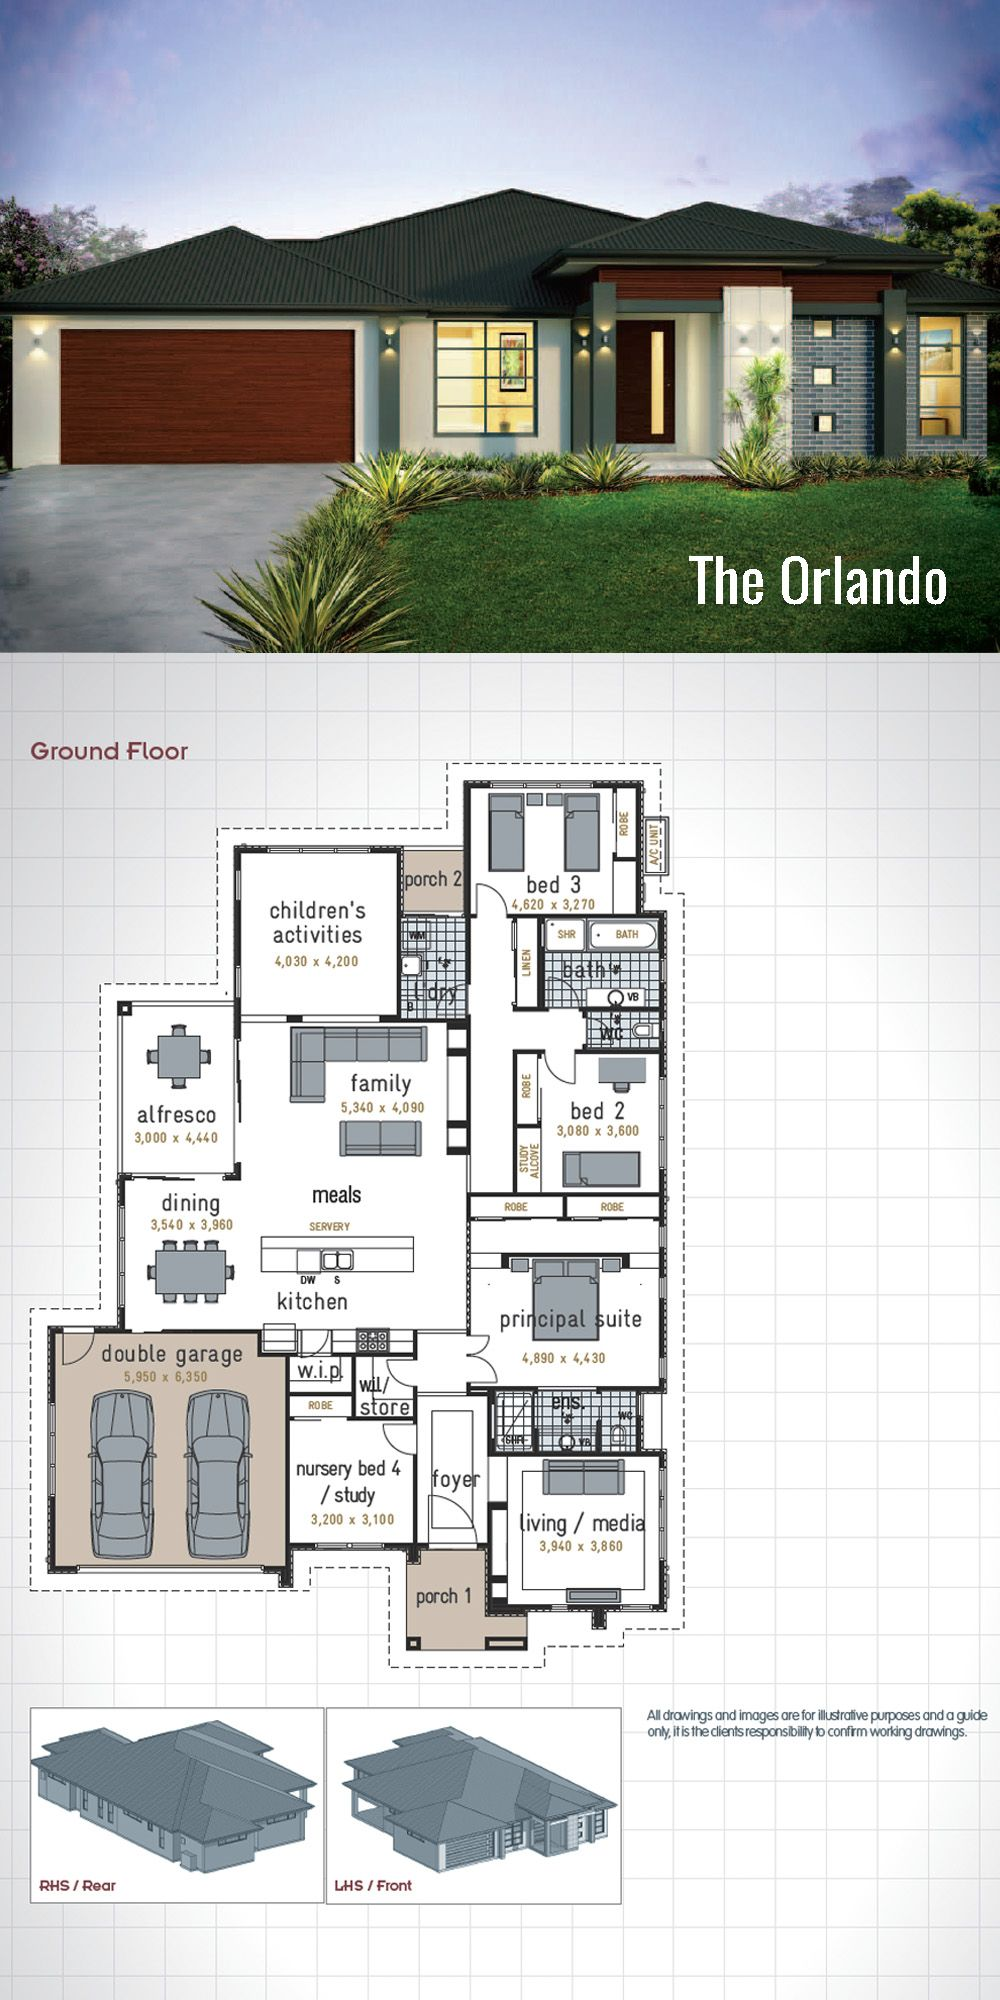 Single storey house design the orlando a generous size - Single story 4 bedroom modern house plans ...